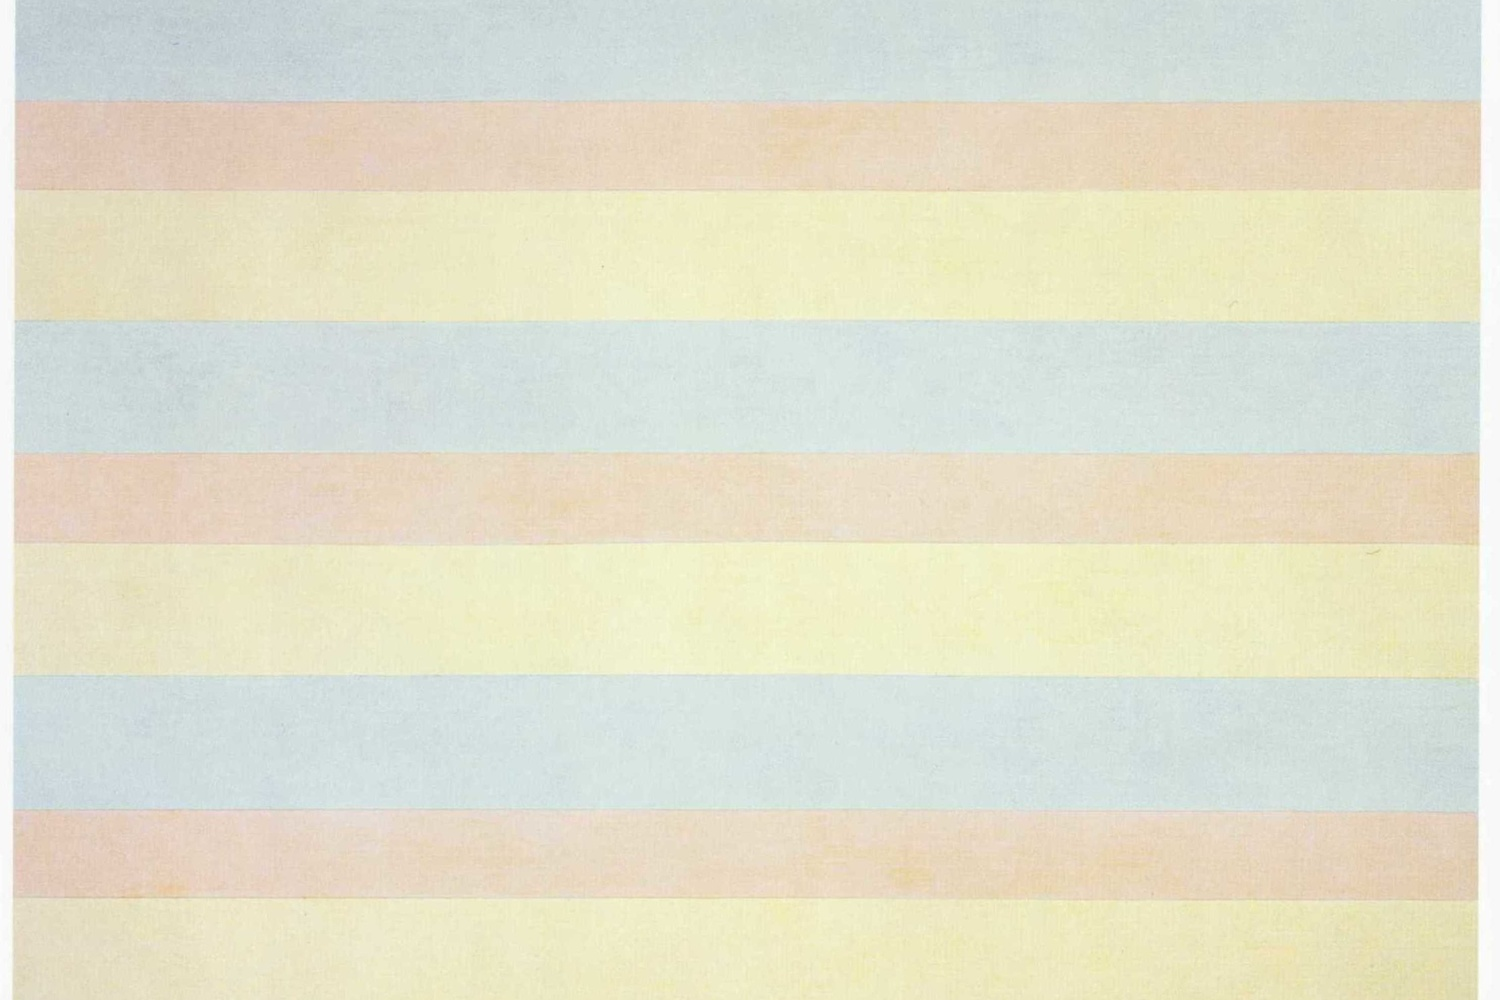 "Agnes Martin. With My Back to the World. 1997. Synthetic polymer paint on canvas, six panels, each 60 x 60"" (152.5 x 152.5 cm). Fractional and promised gift of the Ovitz Family Collection. © 2018 Estate of Agnes Martin/Artists Rights Society (ARS), New York"